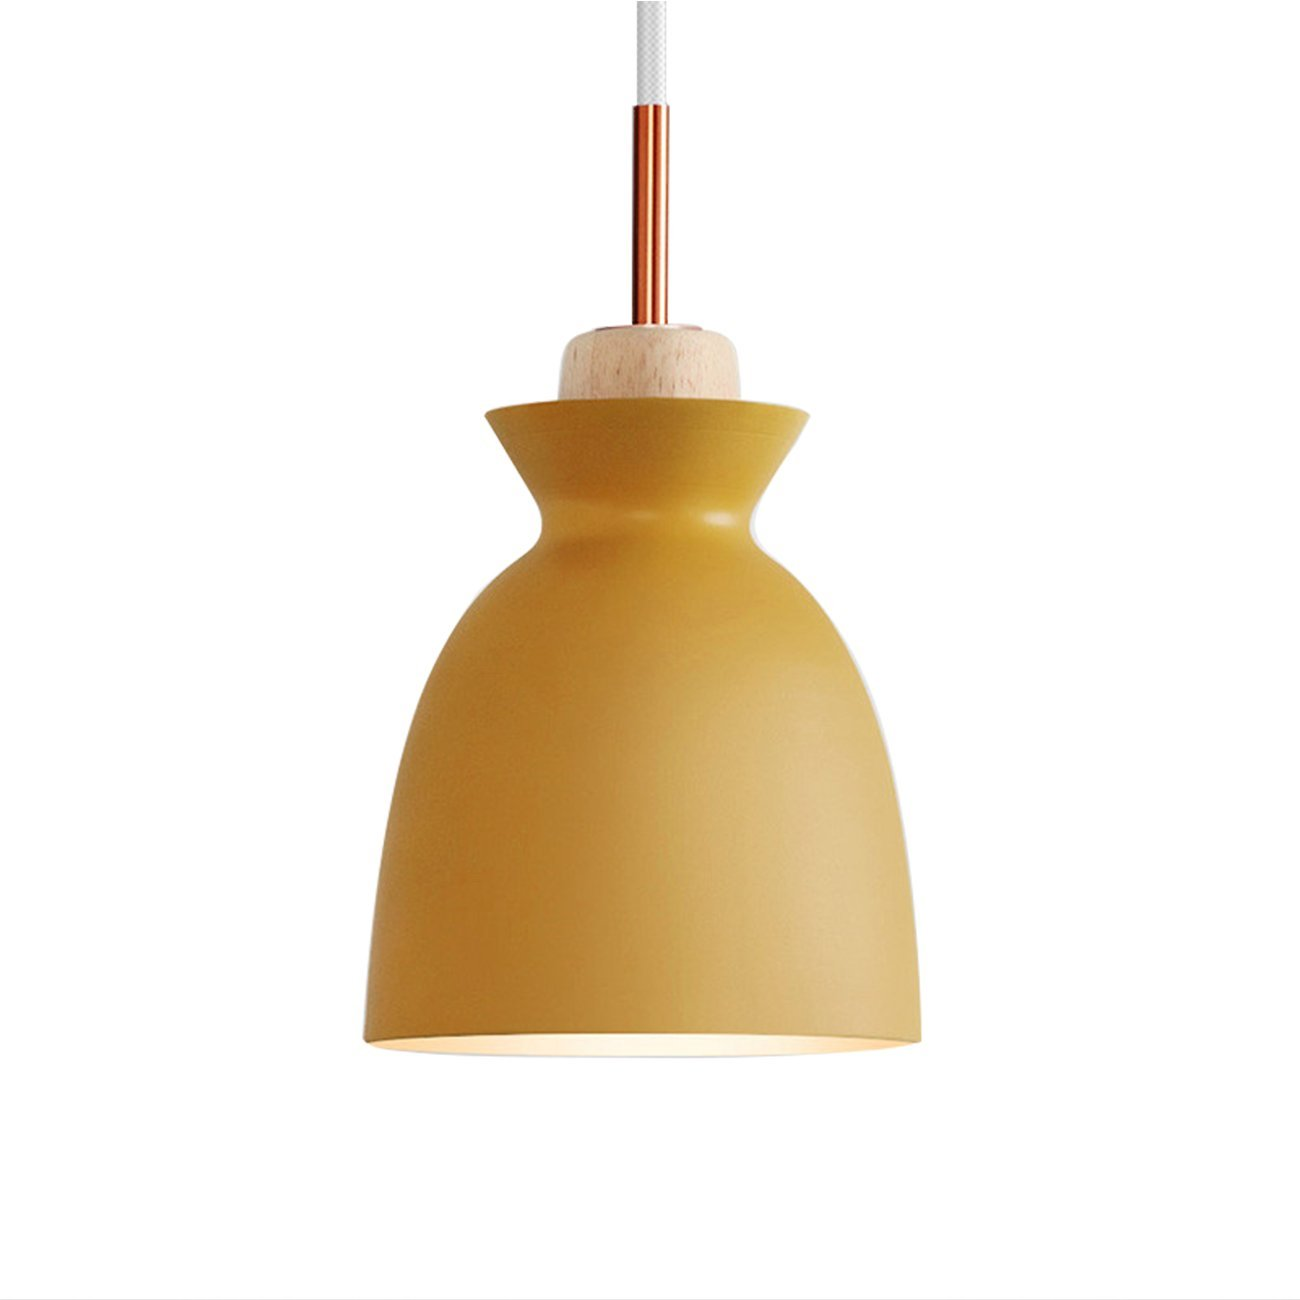 Nordic Modern Pendant Ceiling Light Nordic Macaron Aluminum+Wood Chandelier Fixture Kitchen Pendant Lighting Living Room Pendant Lighting-UL Certification (Yellow-A)